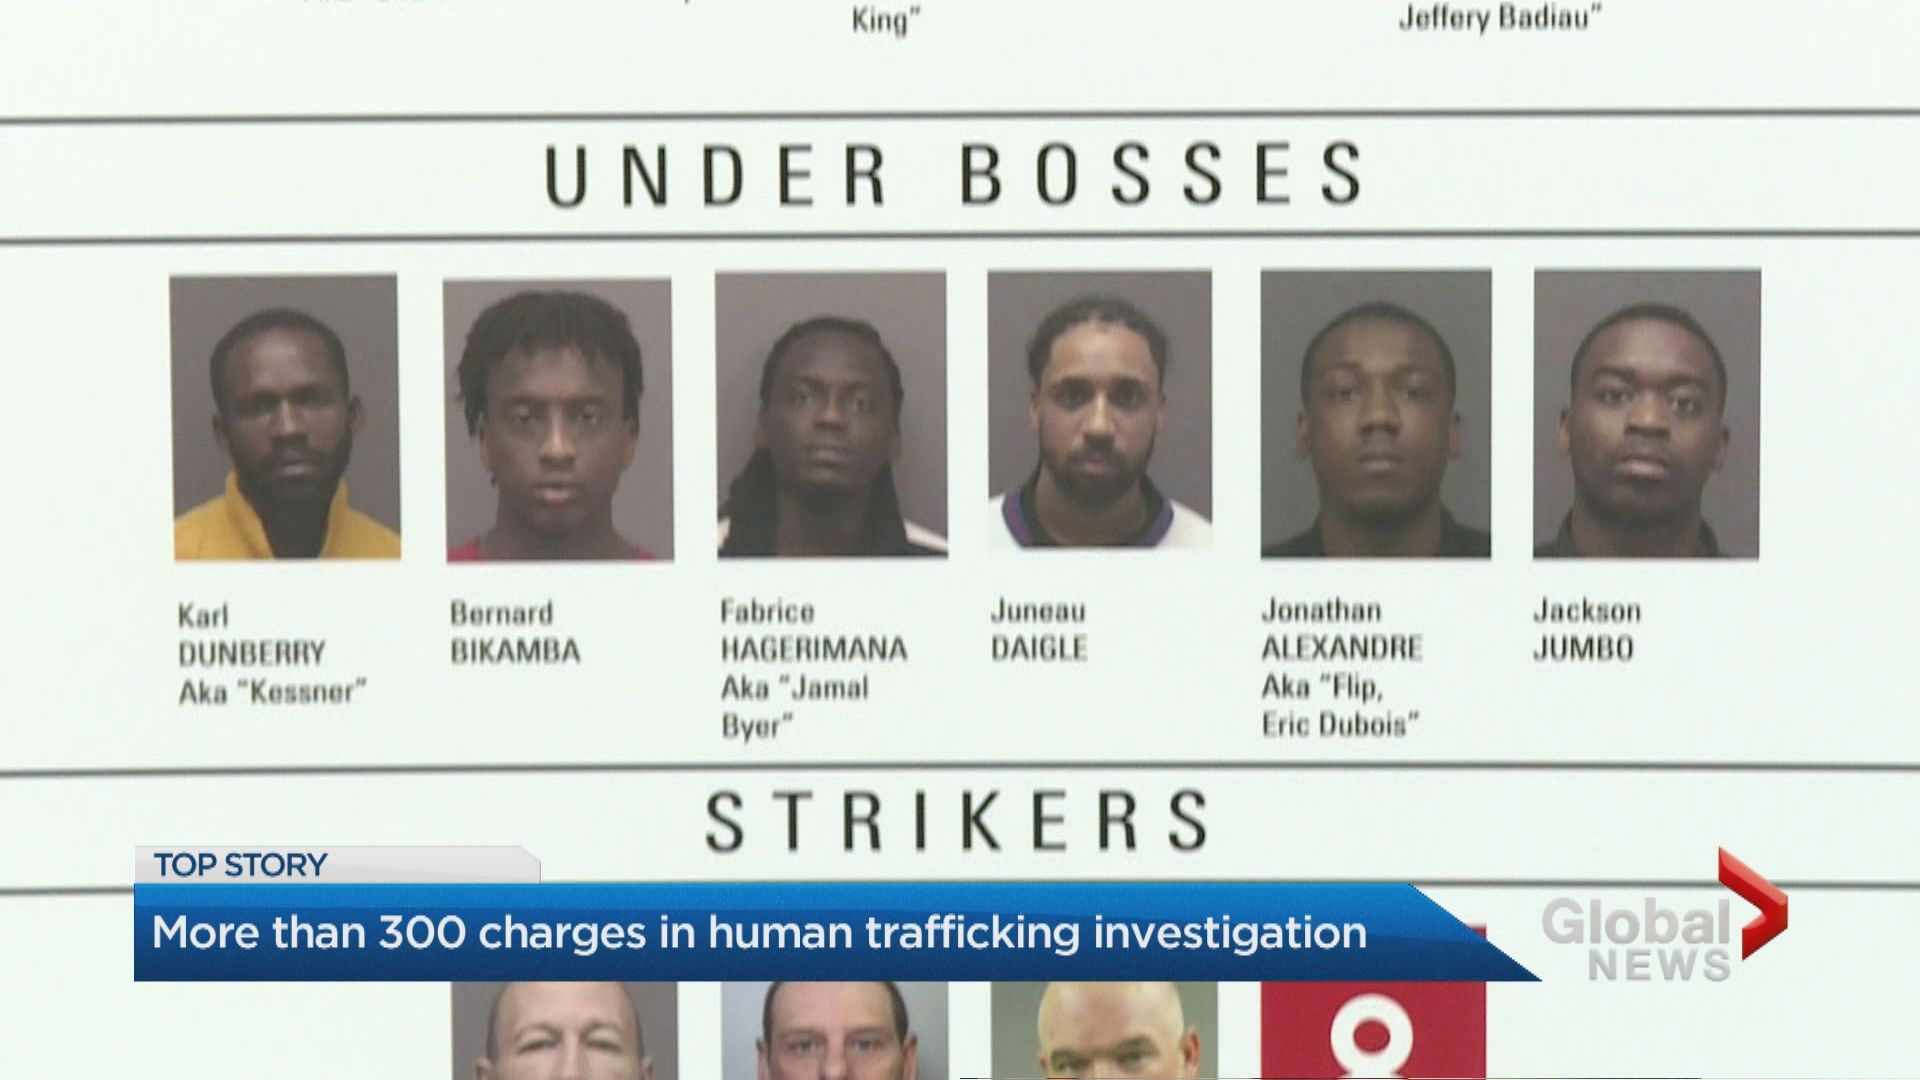 More than 300 charges laid in human trafficking investigation